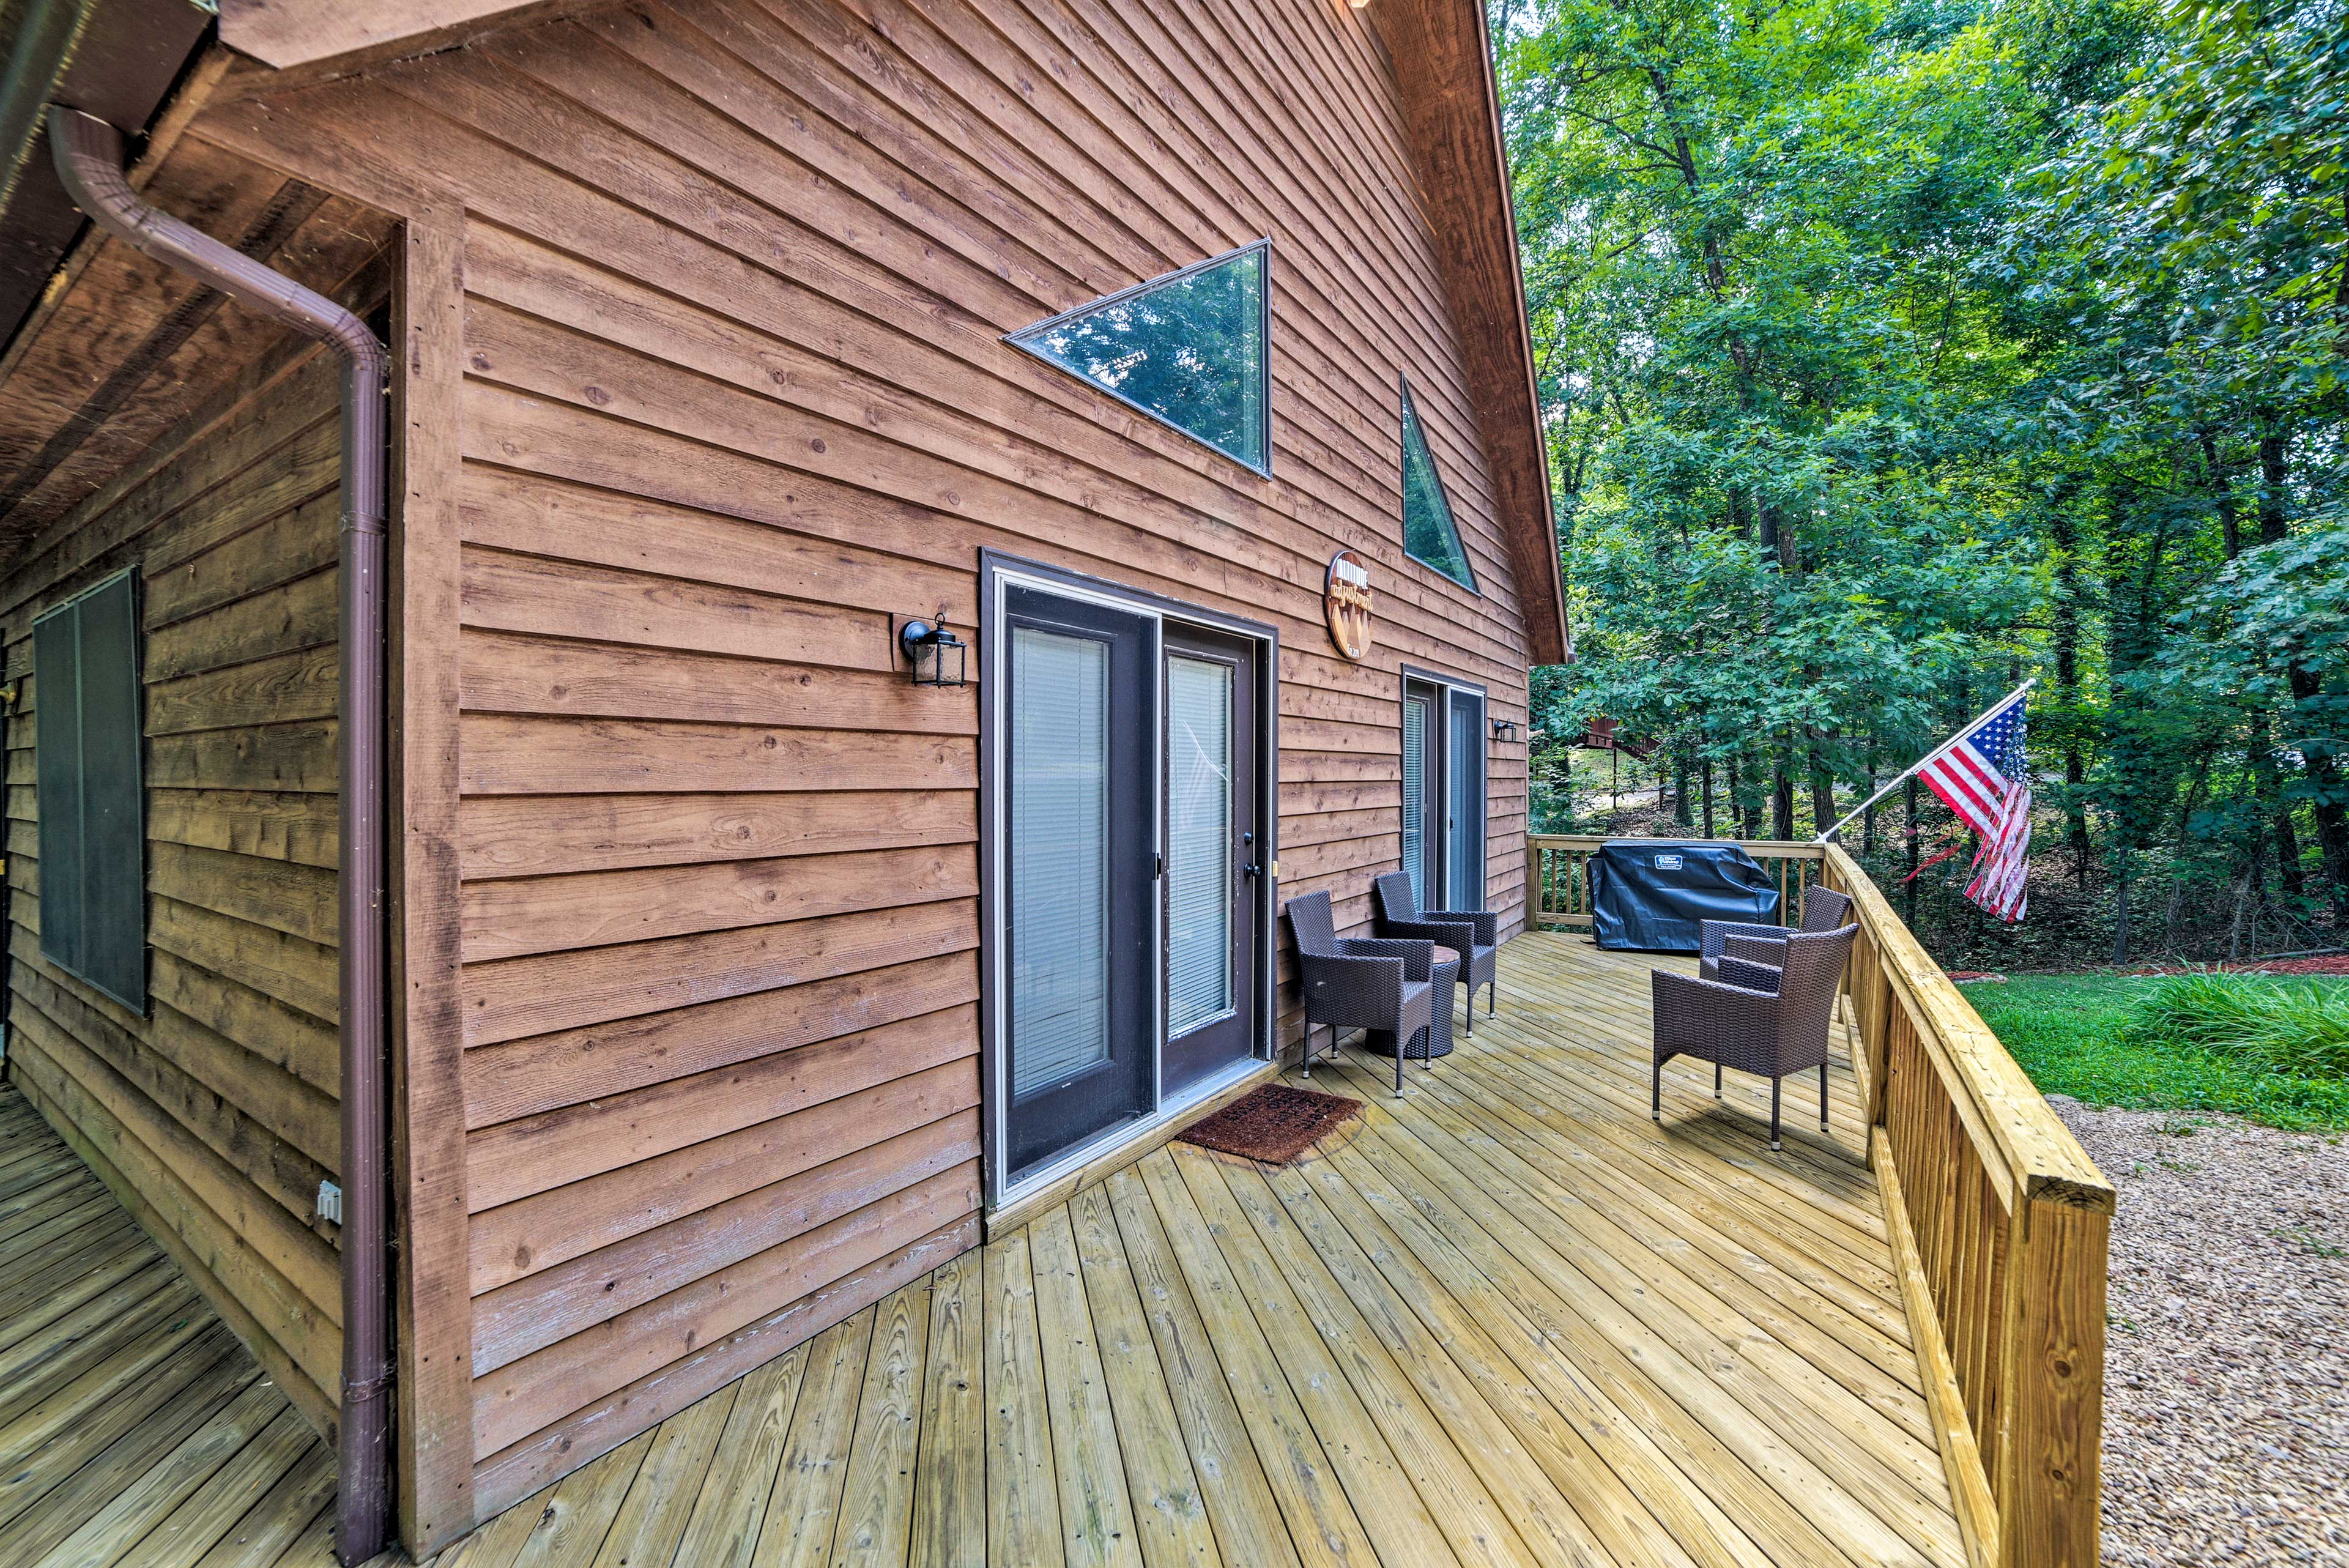 Tranquil views surround the cabin.